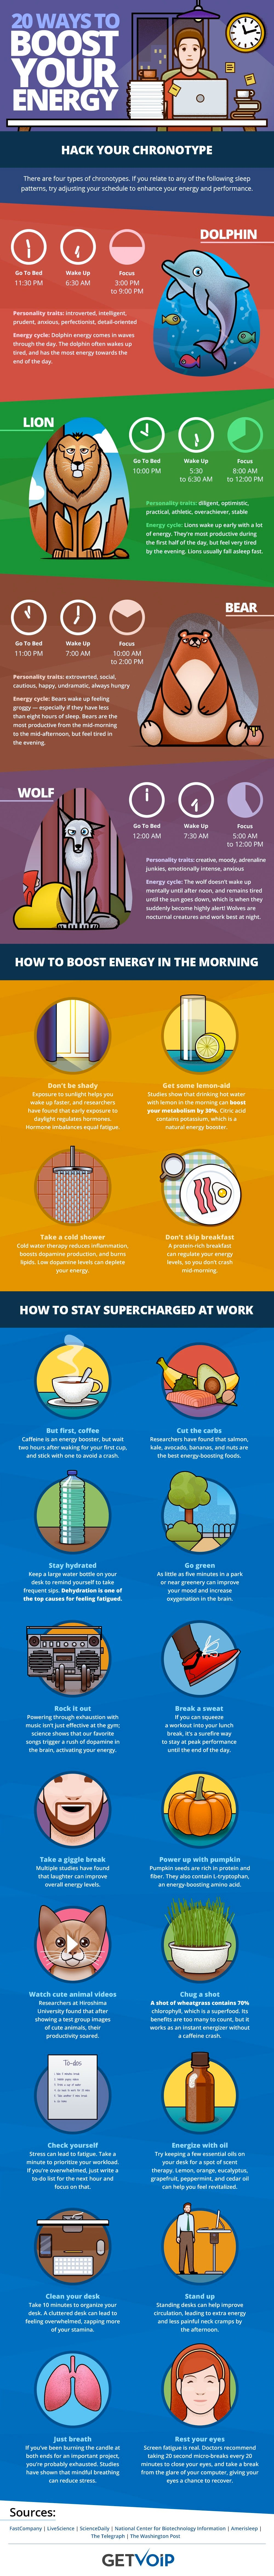 20 Ways to Boost Your Energy at Work (Infographic)